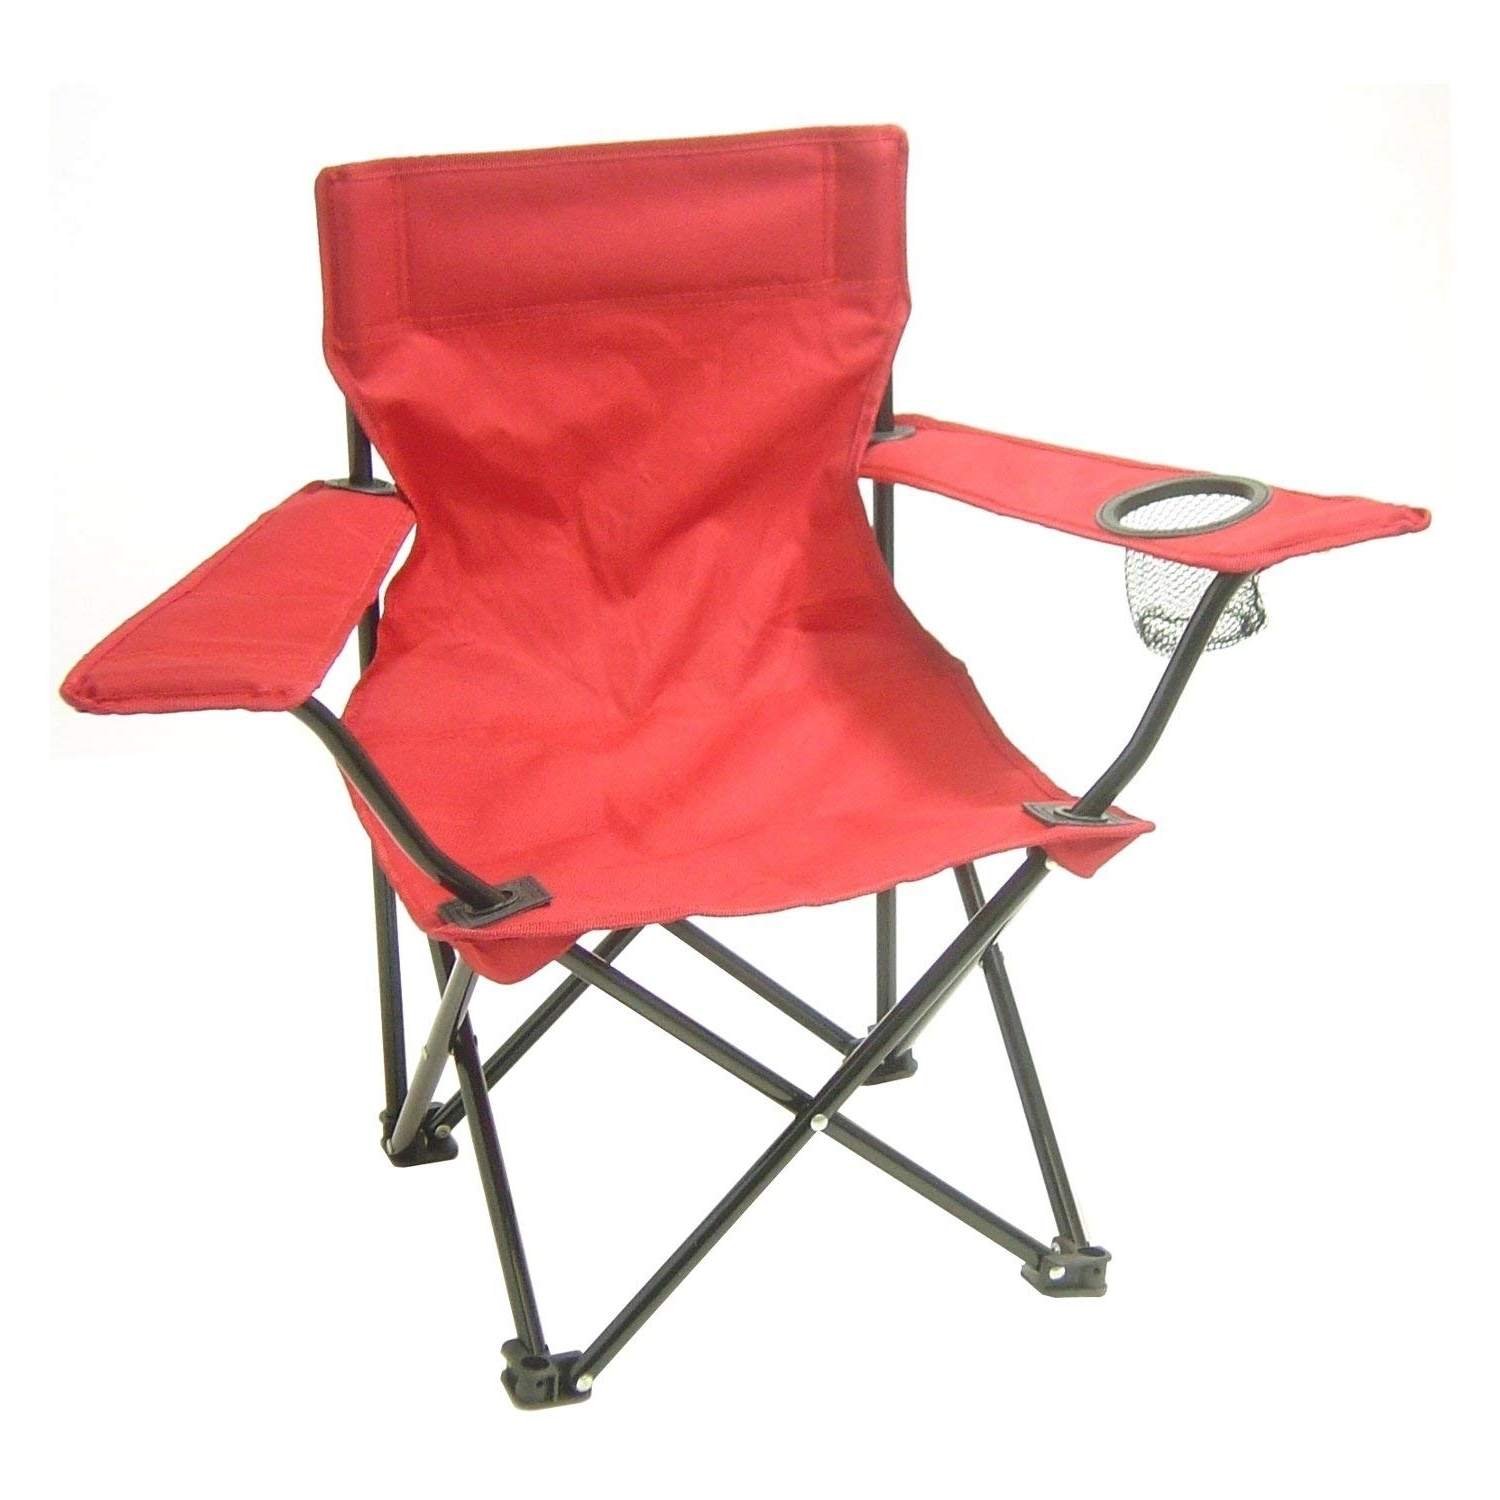 Most Recent Alexa Firecracker Side Chairs Regarding Amazon: Redmon For Kids, Kids Folding Camp Chair, Red: Baby (View 13 of 20)